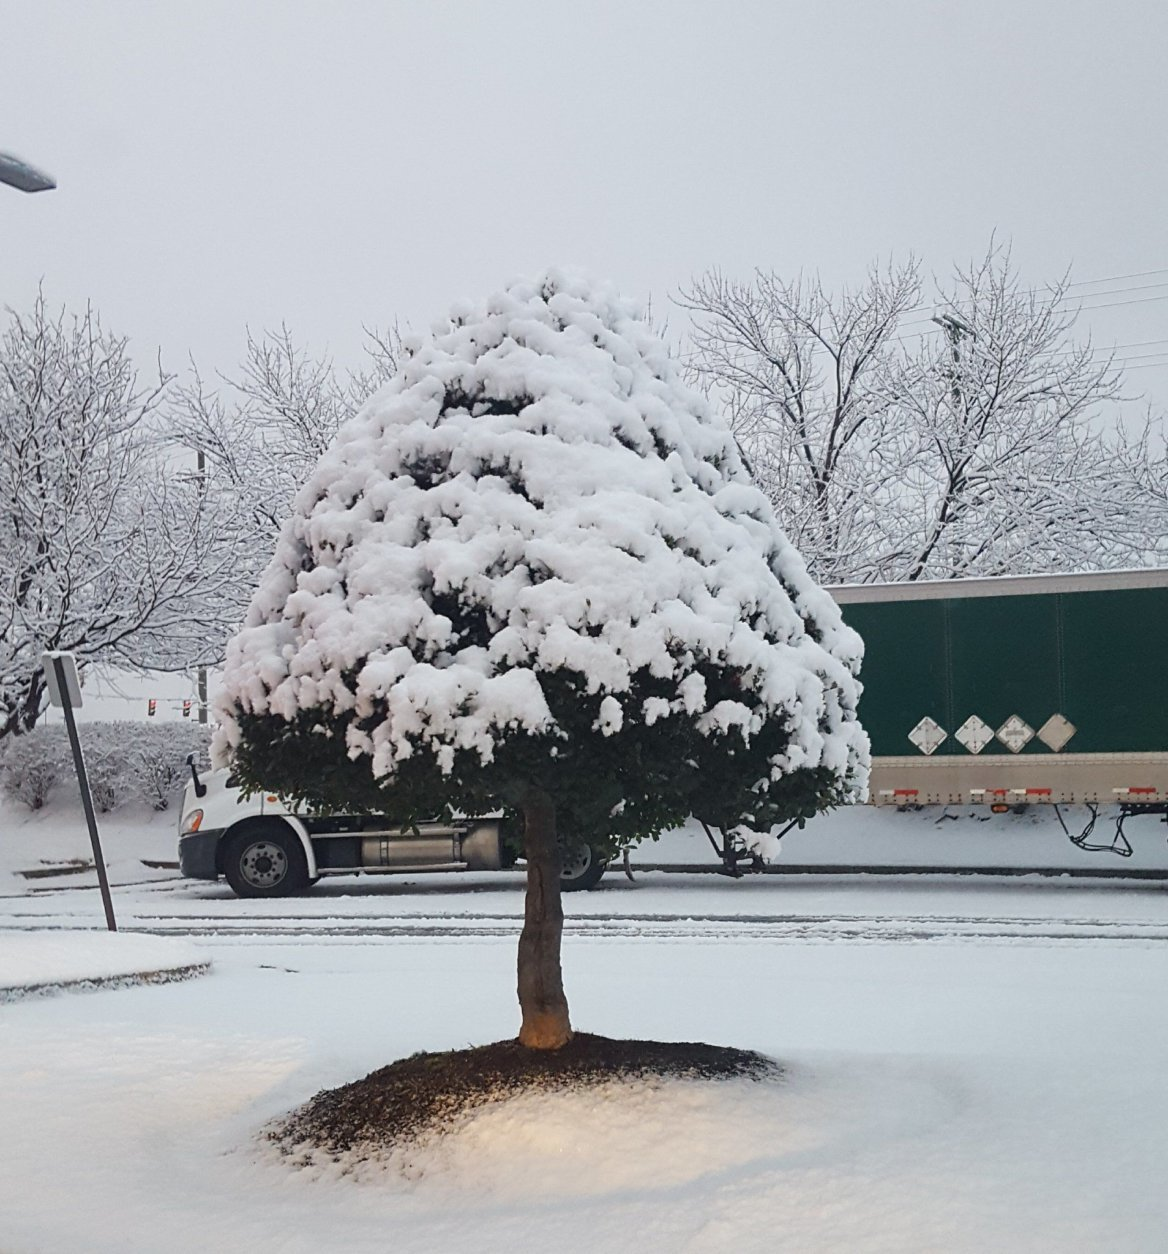 There's plenty of snow in Leesburg, Virginia. (Courtesy @sherrysherry1 via Twitter)